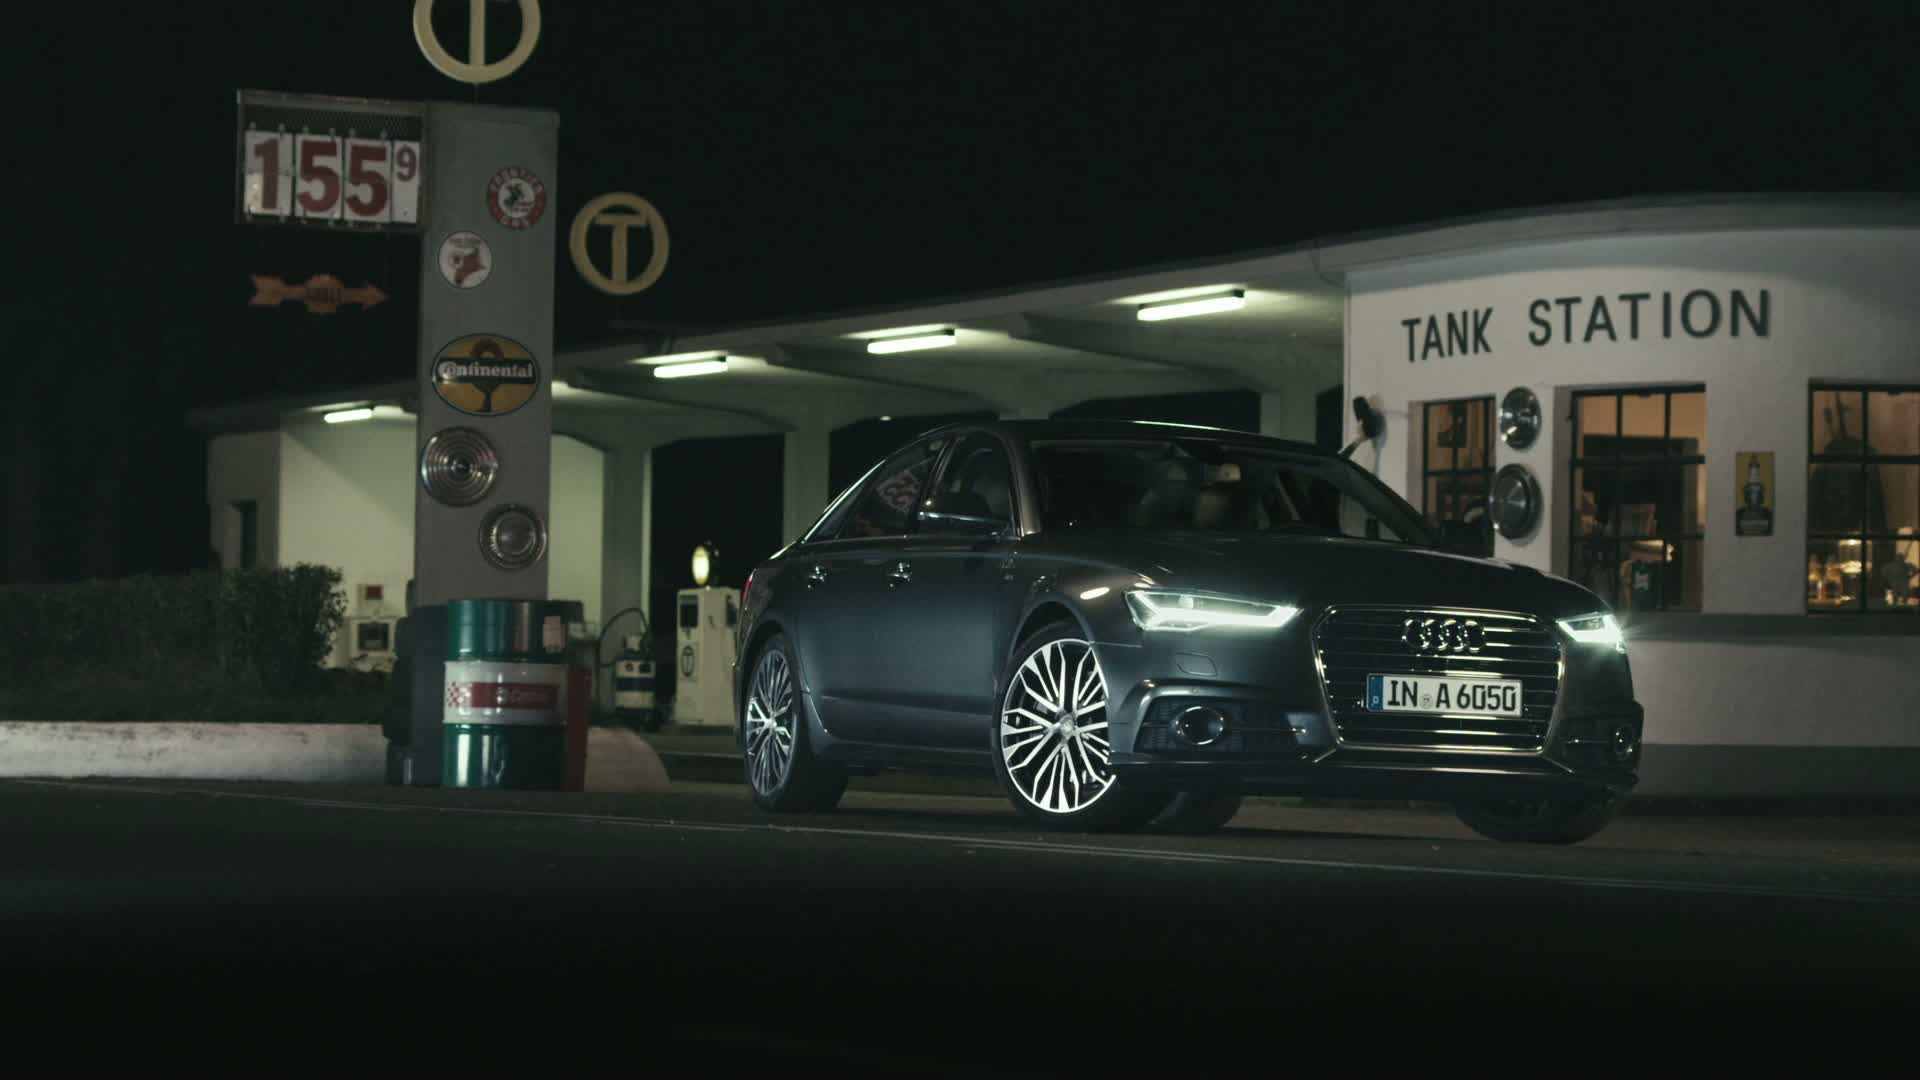 Showdown at the gas station: The Audi A6 ultra